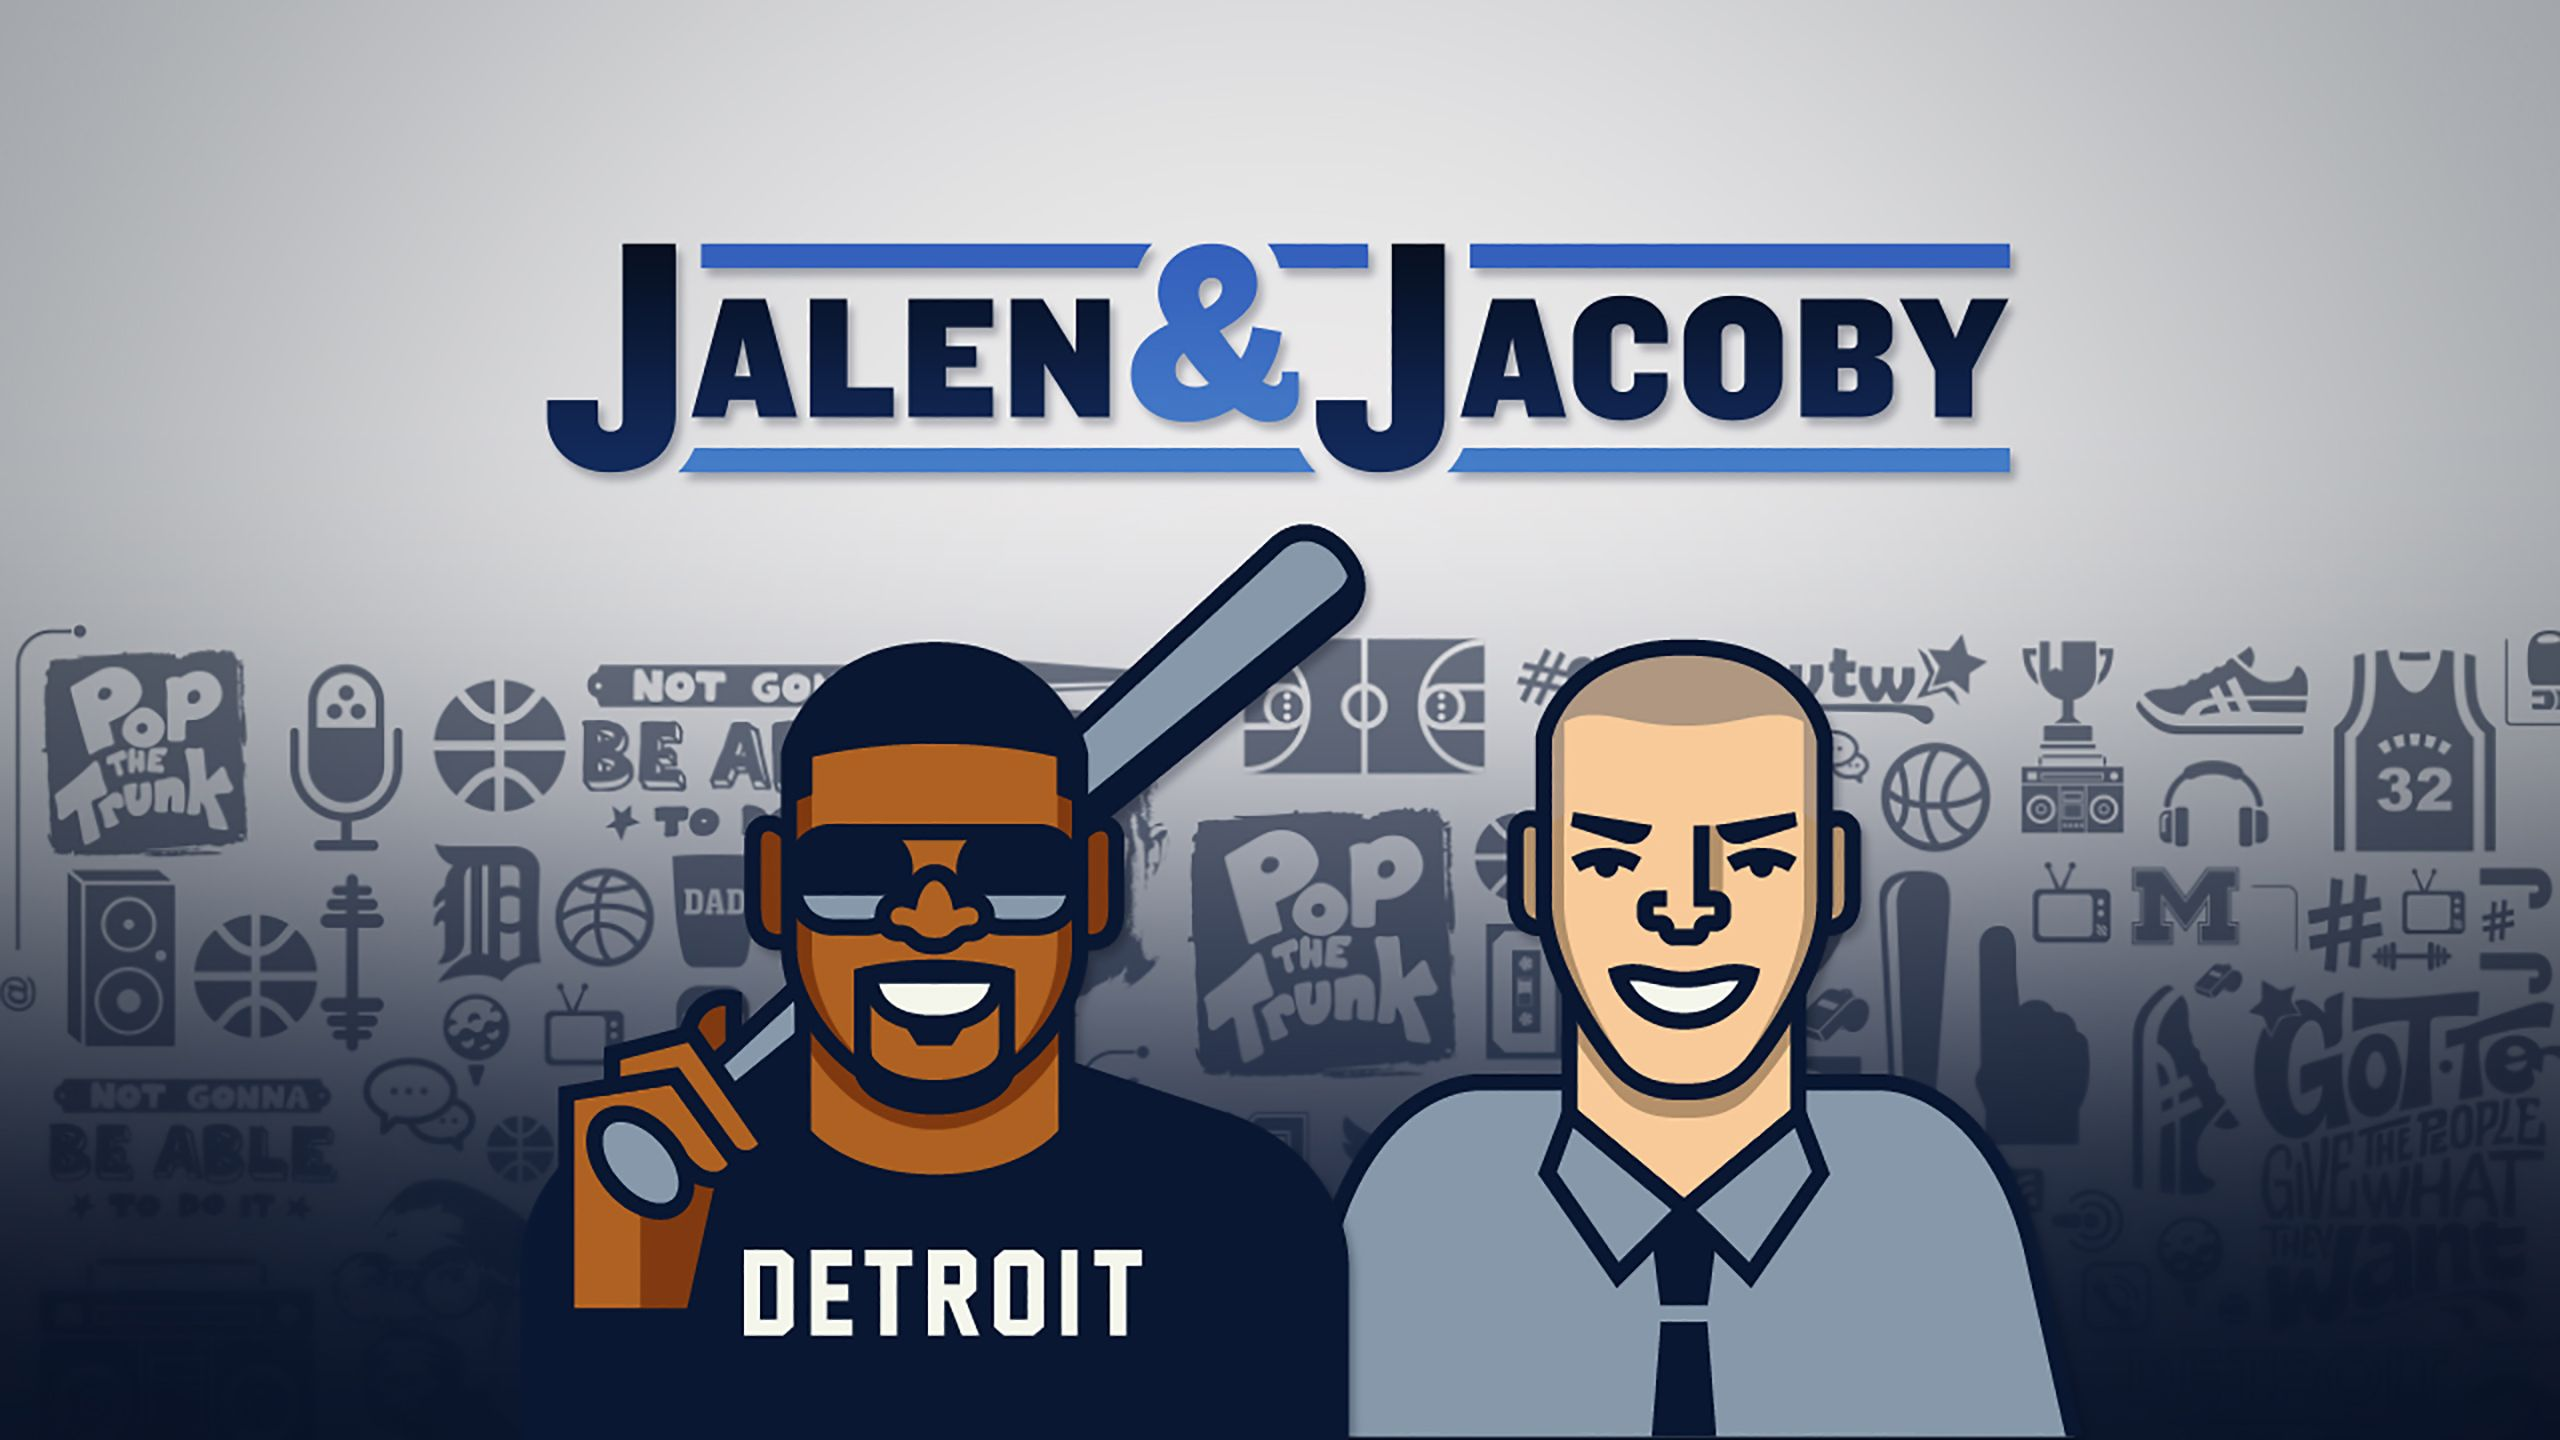 Fri, 11/17 - Jalen & Jacoby